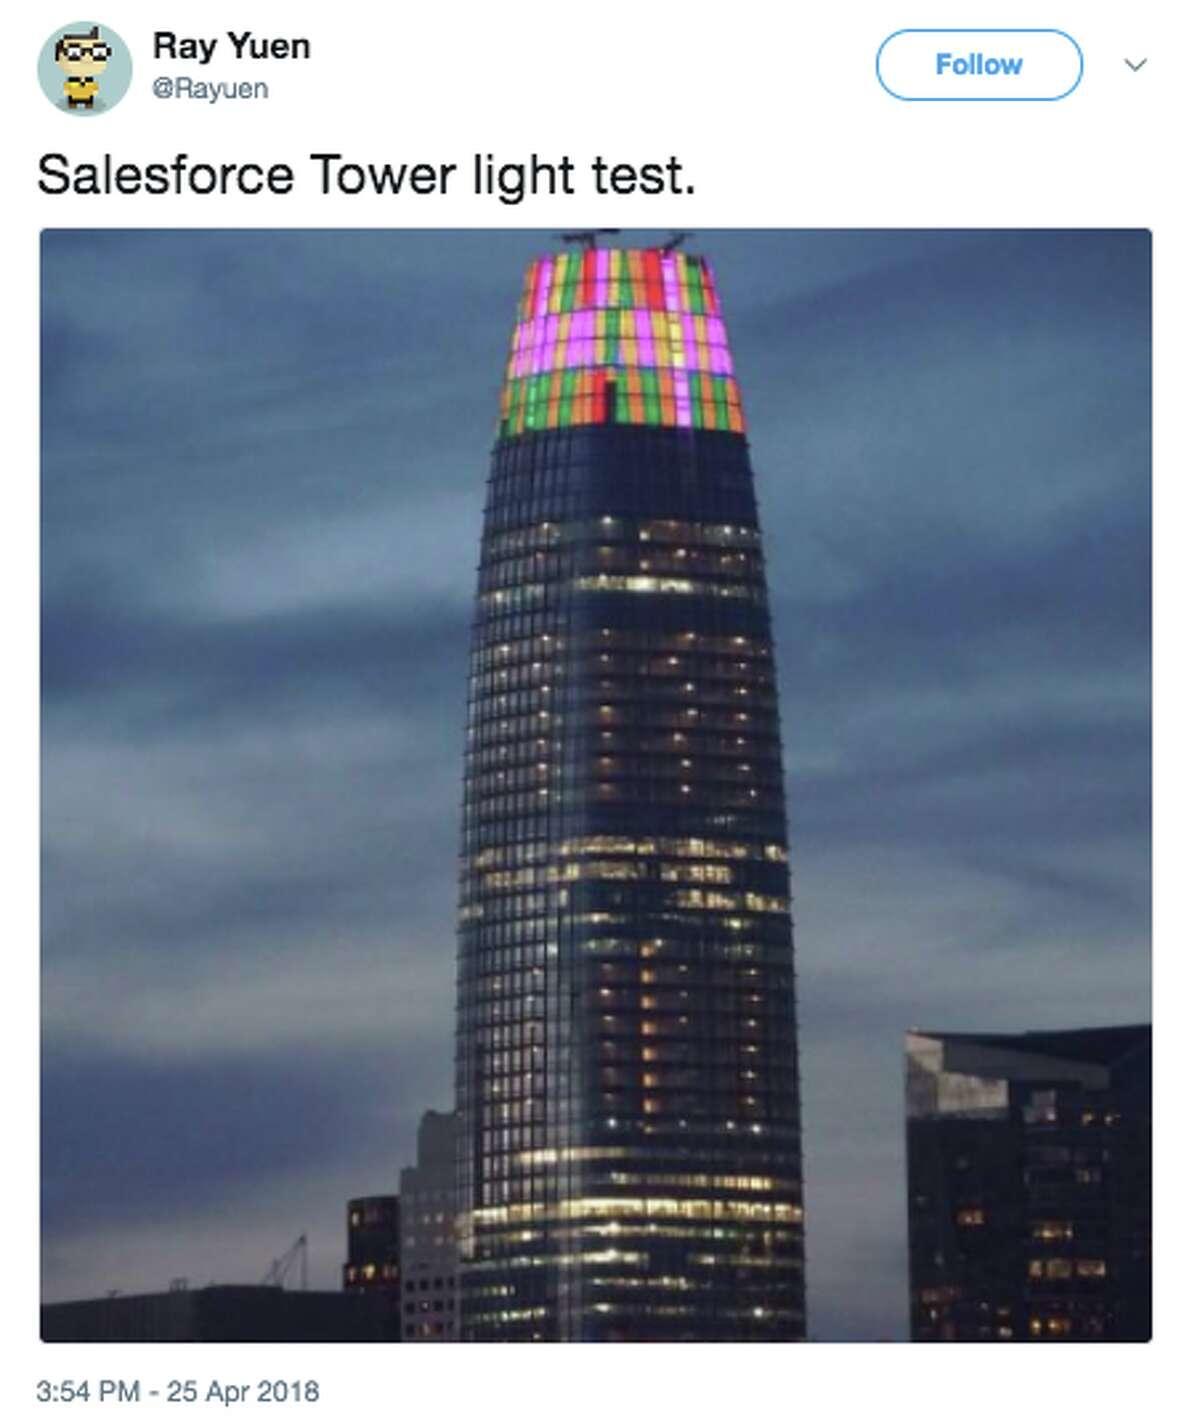 Salesforce Tower on April 25, 2018: Lights glowing at the crown.